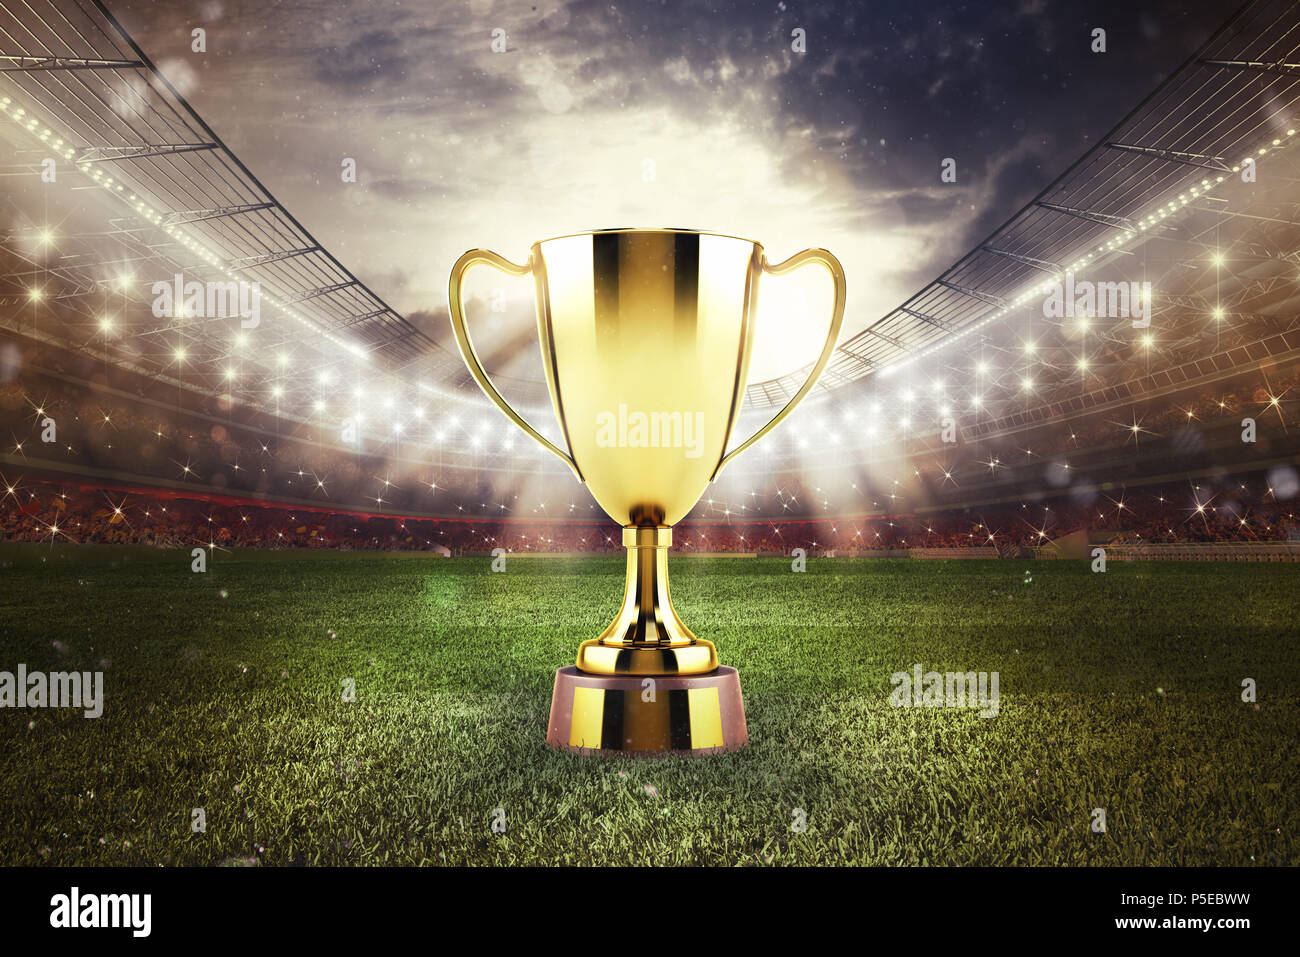 Golden winner s cup in the middle of a stadium with audience Stock Photo